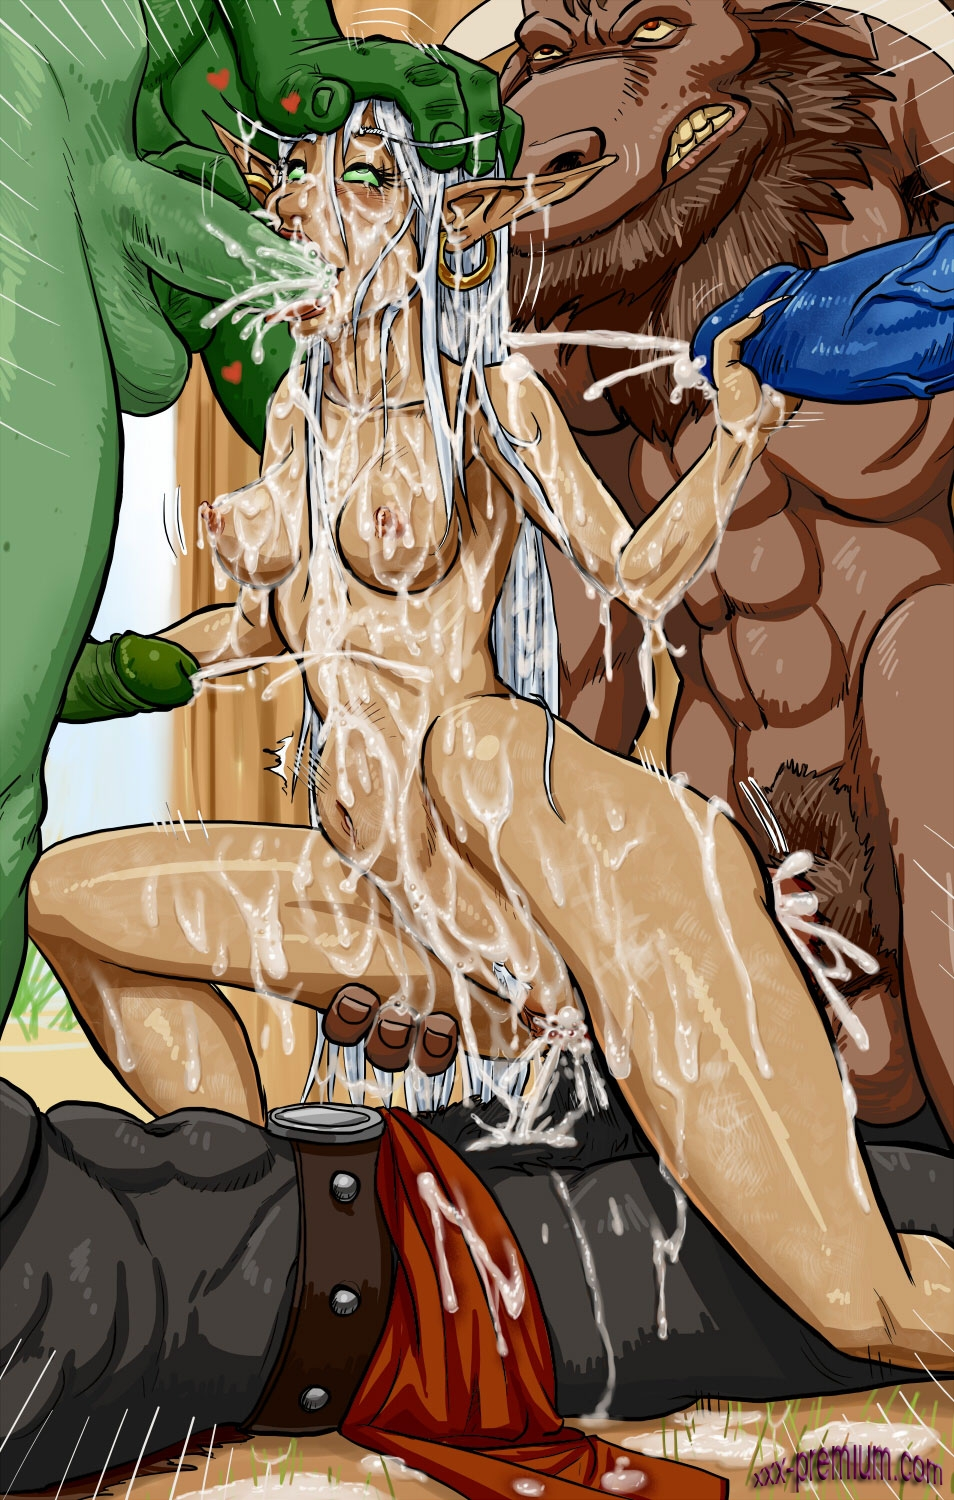 Whorecraft porno tauren sex pic